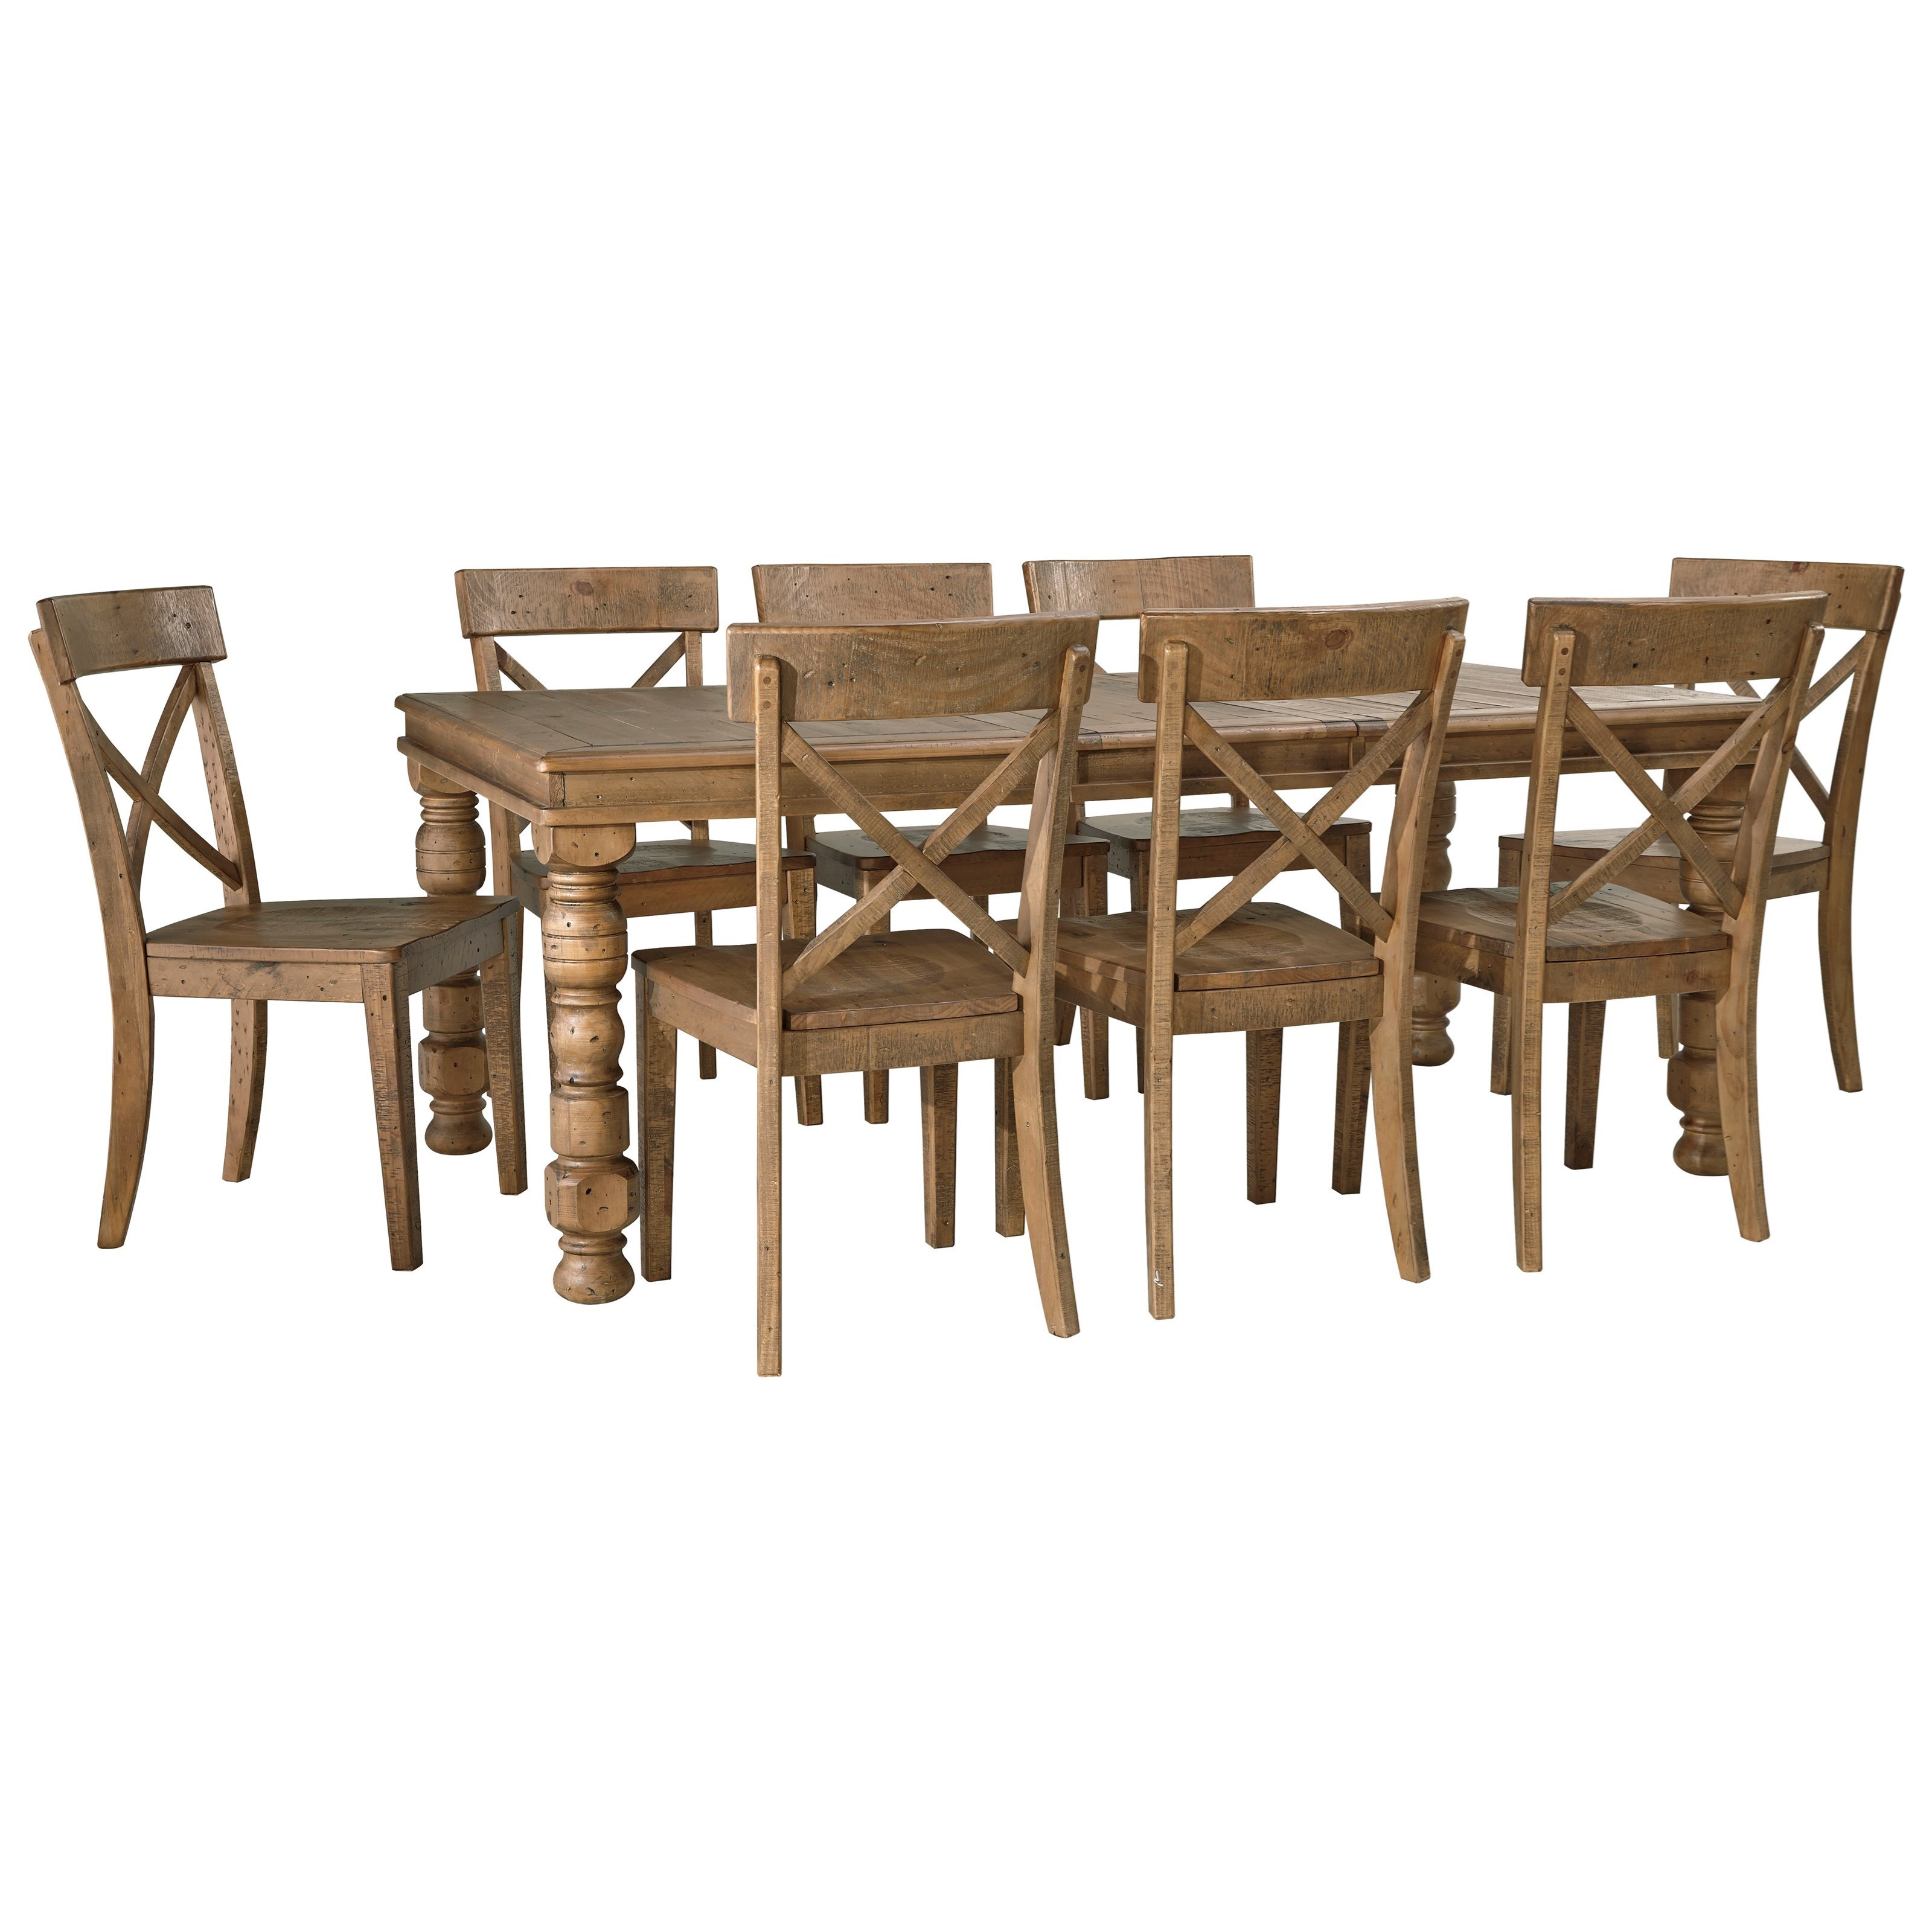 Signature Design by Ashley Trishley 9-Piece Dining Table Set - Item Number: D659-35+8x01